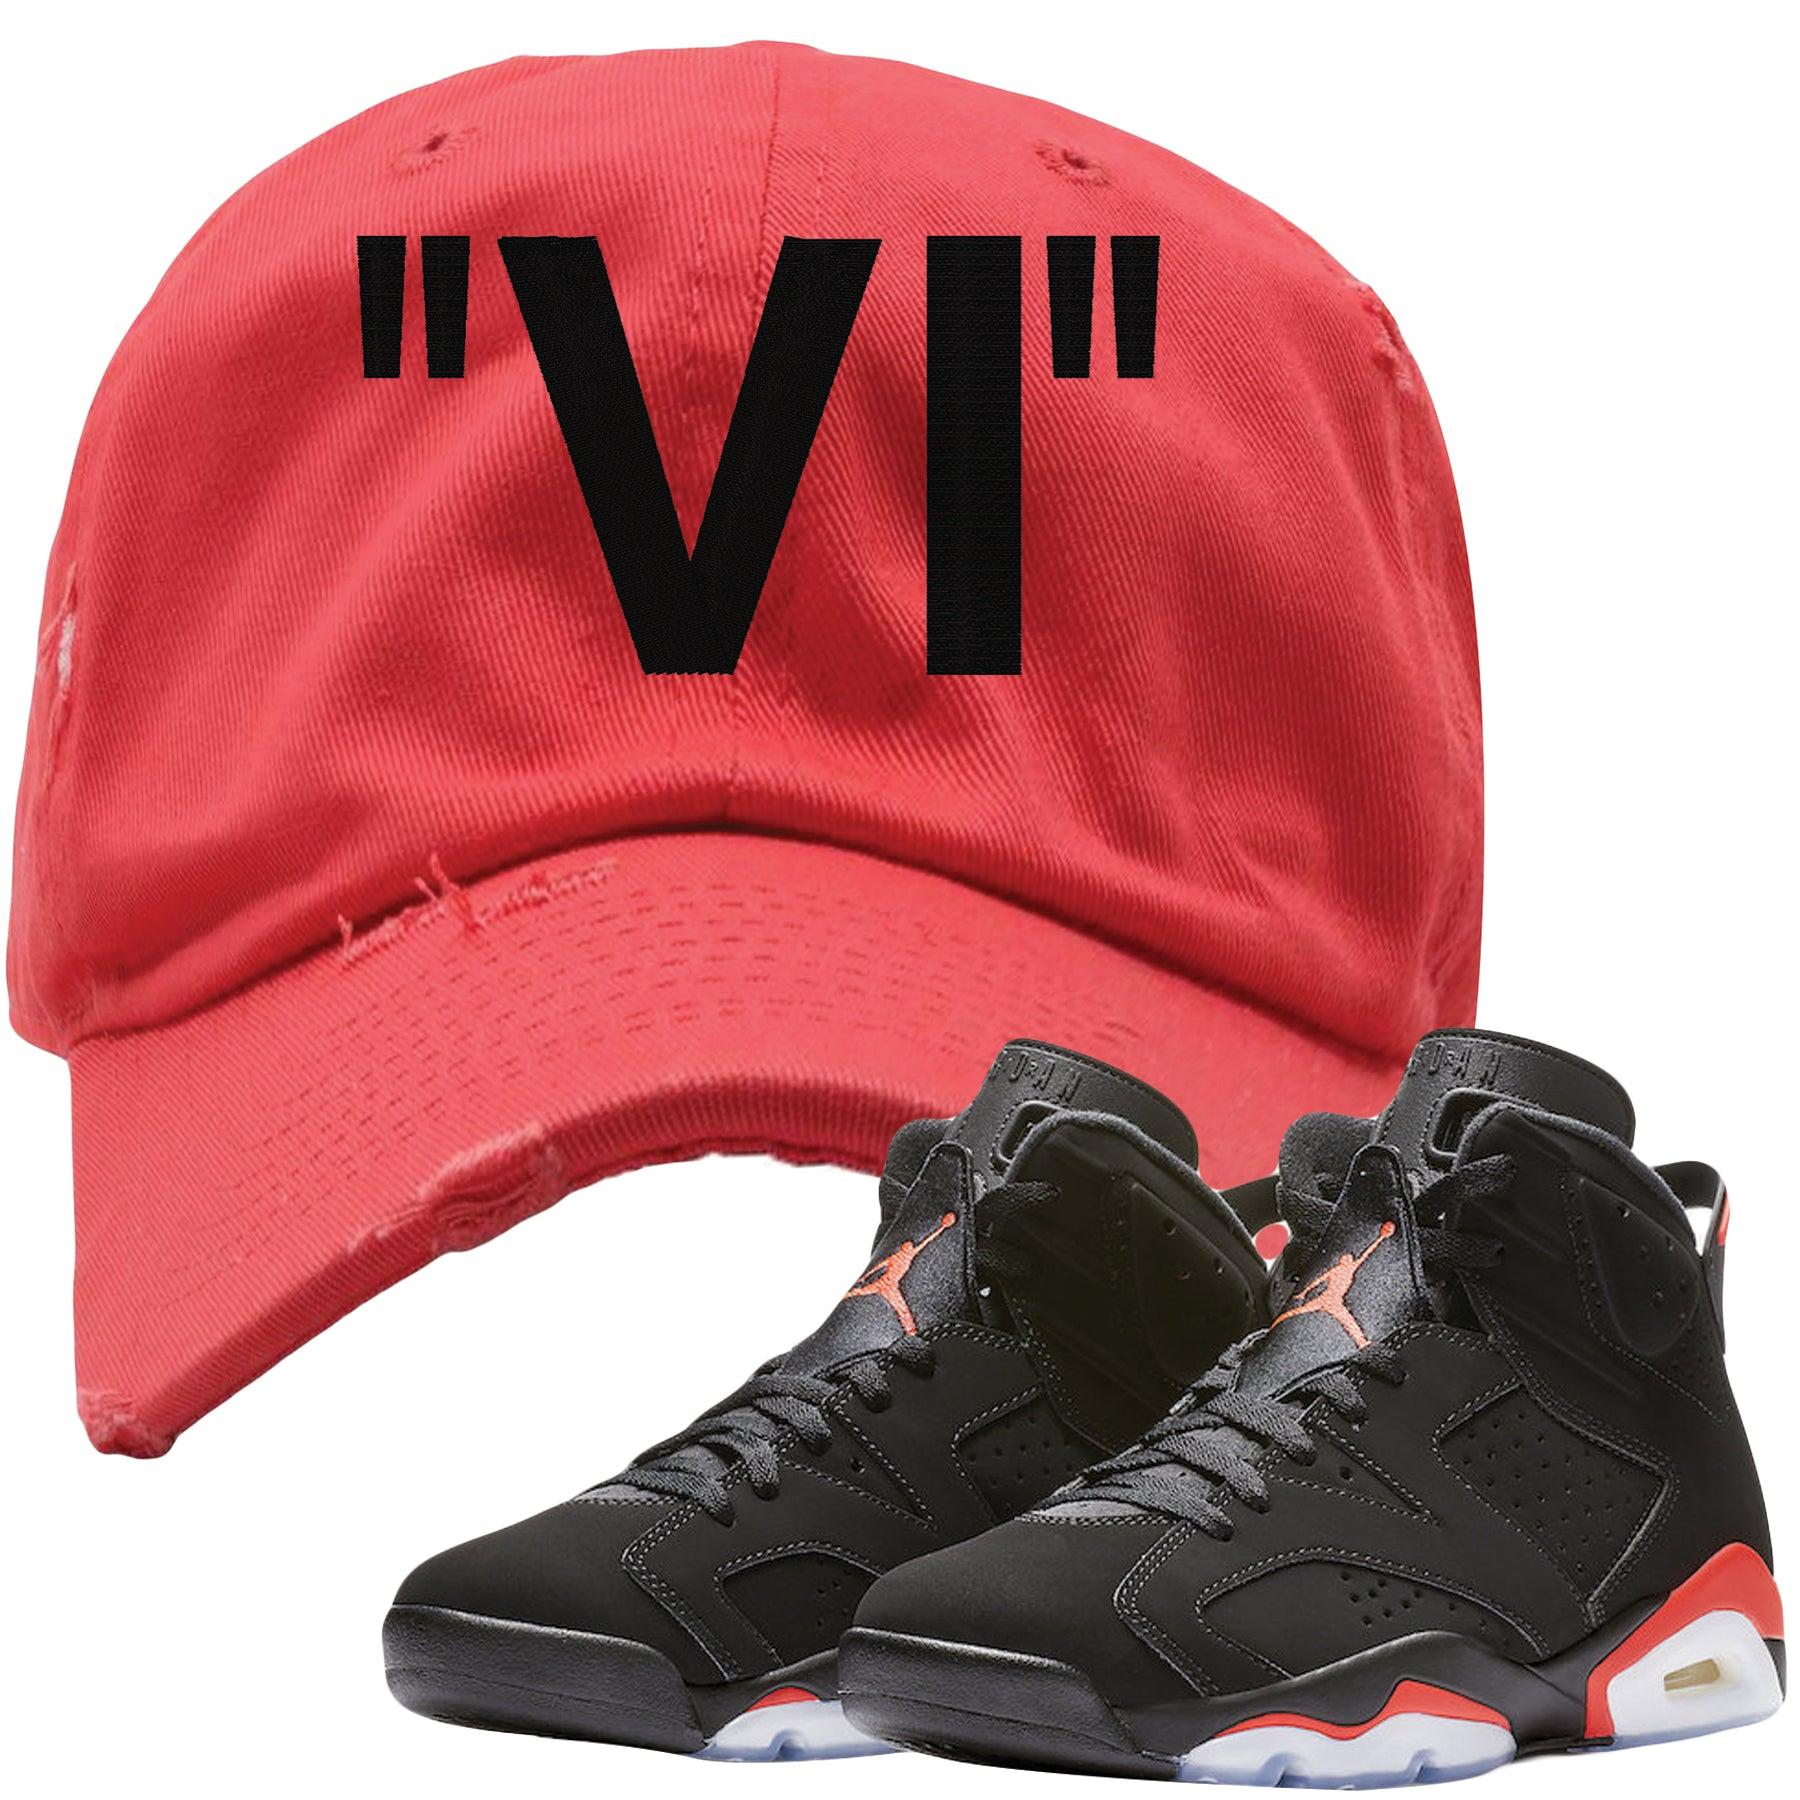 ac7522079260d The Jordan 6 Infrared Distressed Dad Hat is custom designed to perfectly  match the retro Jordan